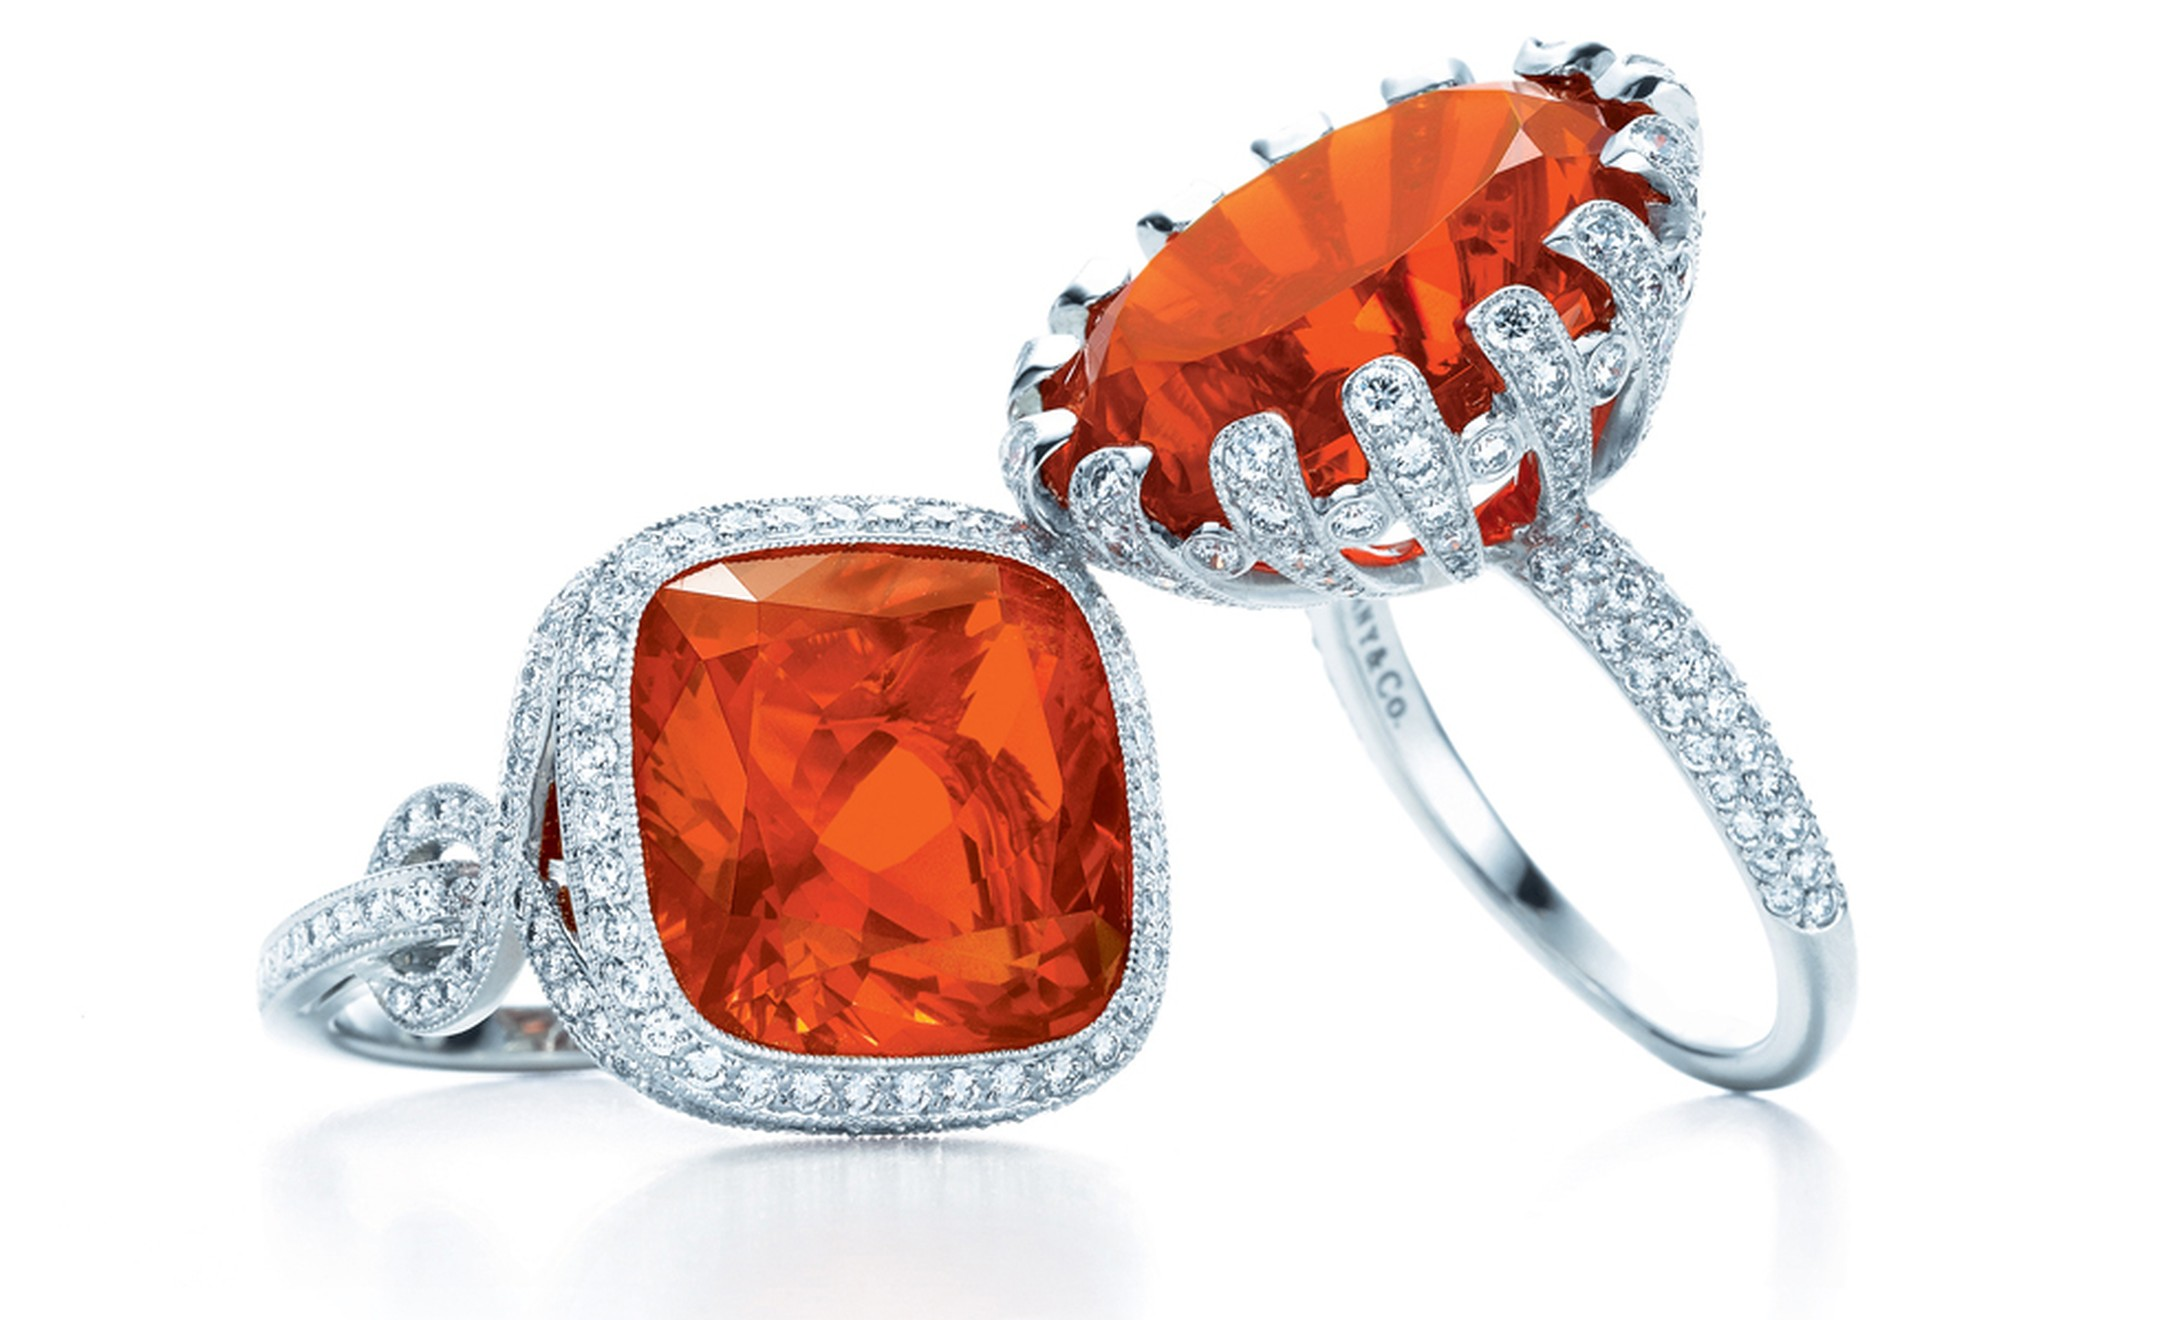 TIFFANY & CO. Cushion-cut fire opal in knot ring set in platinum oval fire opal in petals ring with diamonds set in platinums. POA